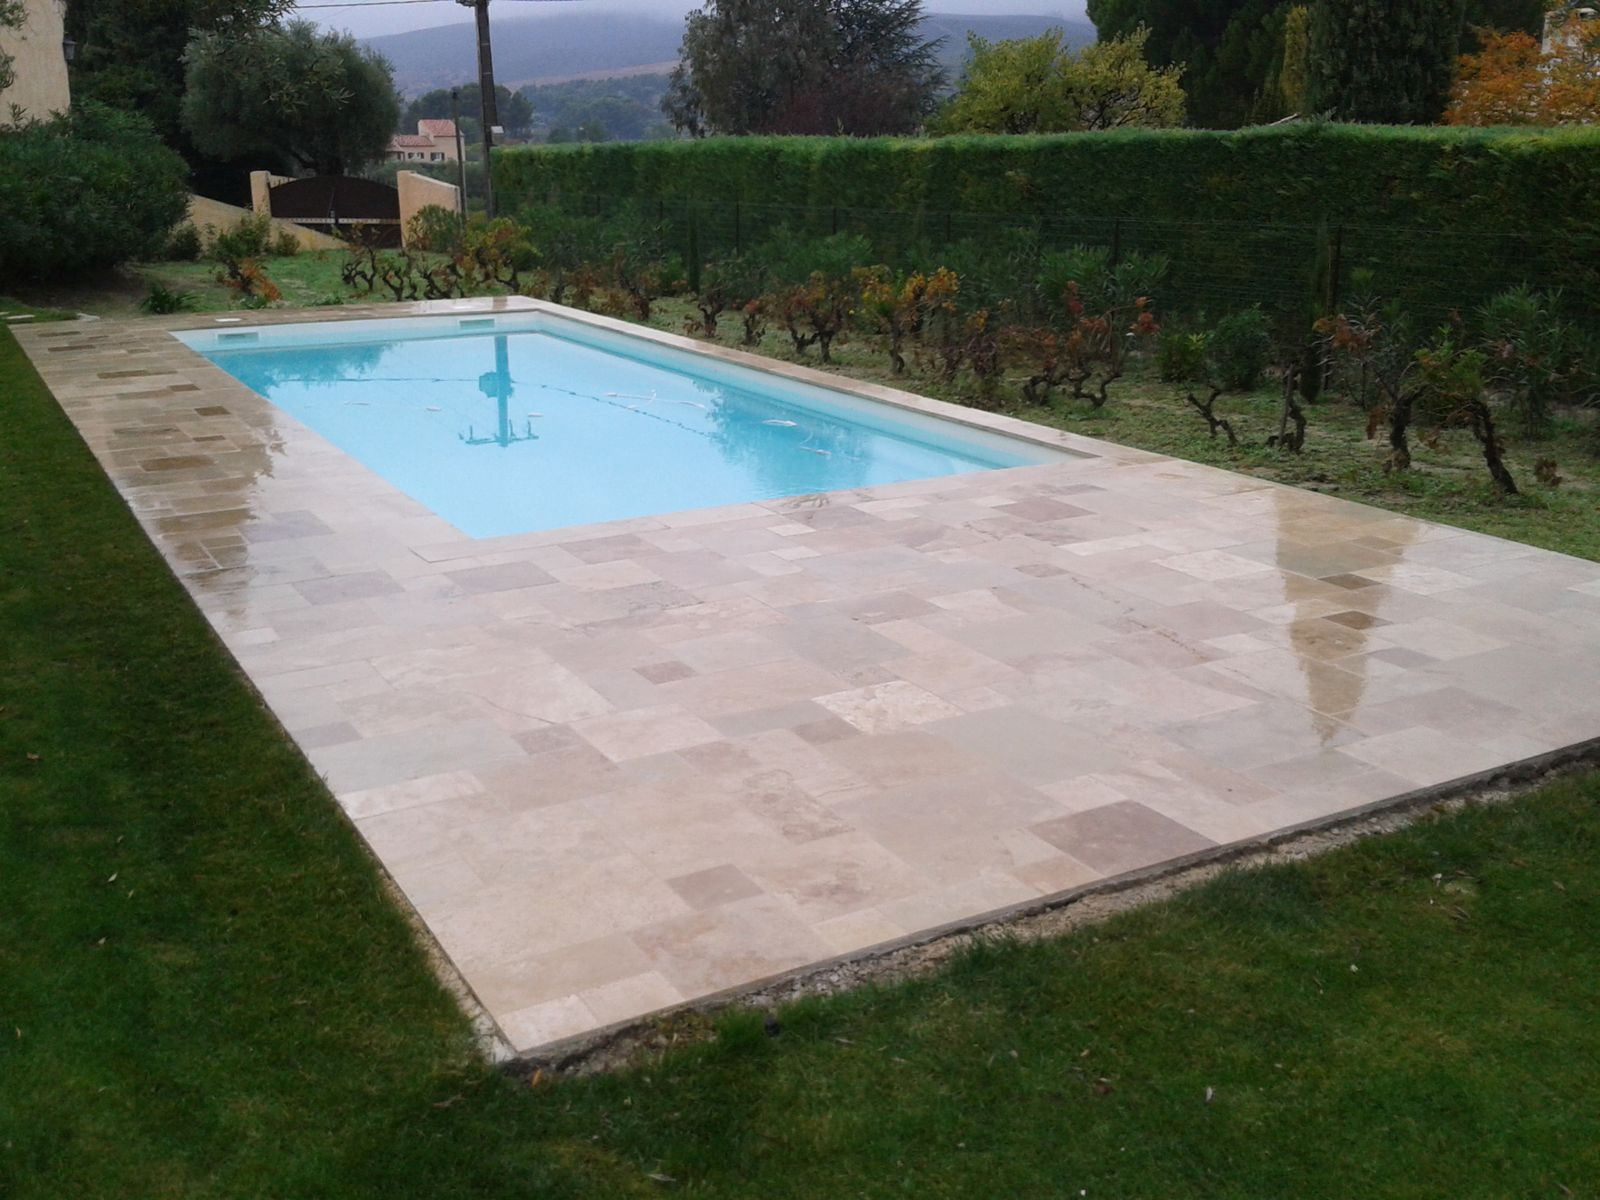 Colle pour carrelage piscine 28 images colle carrelage - Colle pour reparation liner piscine ...